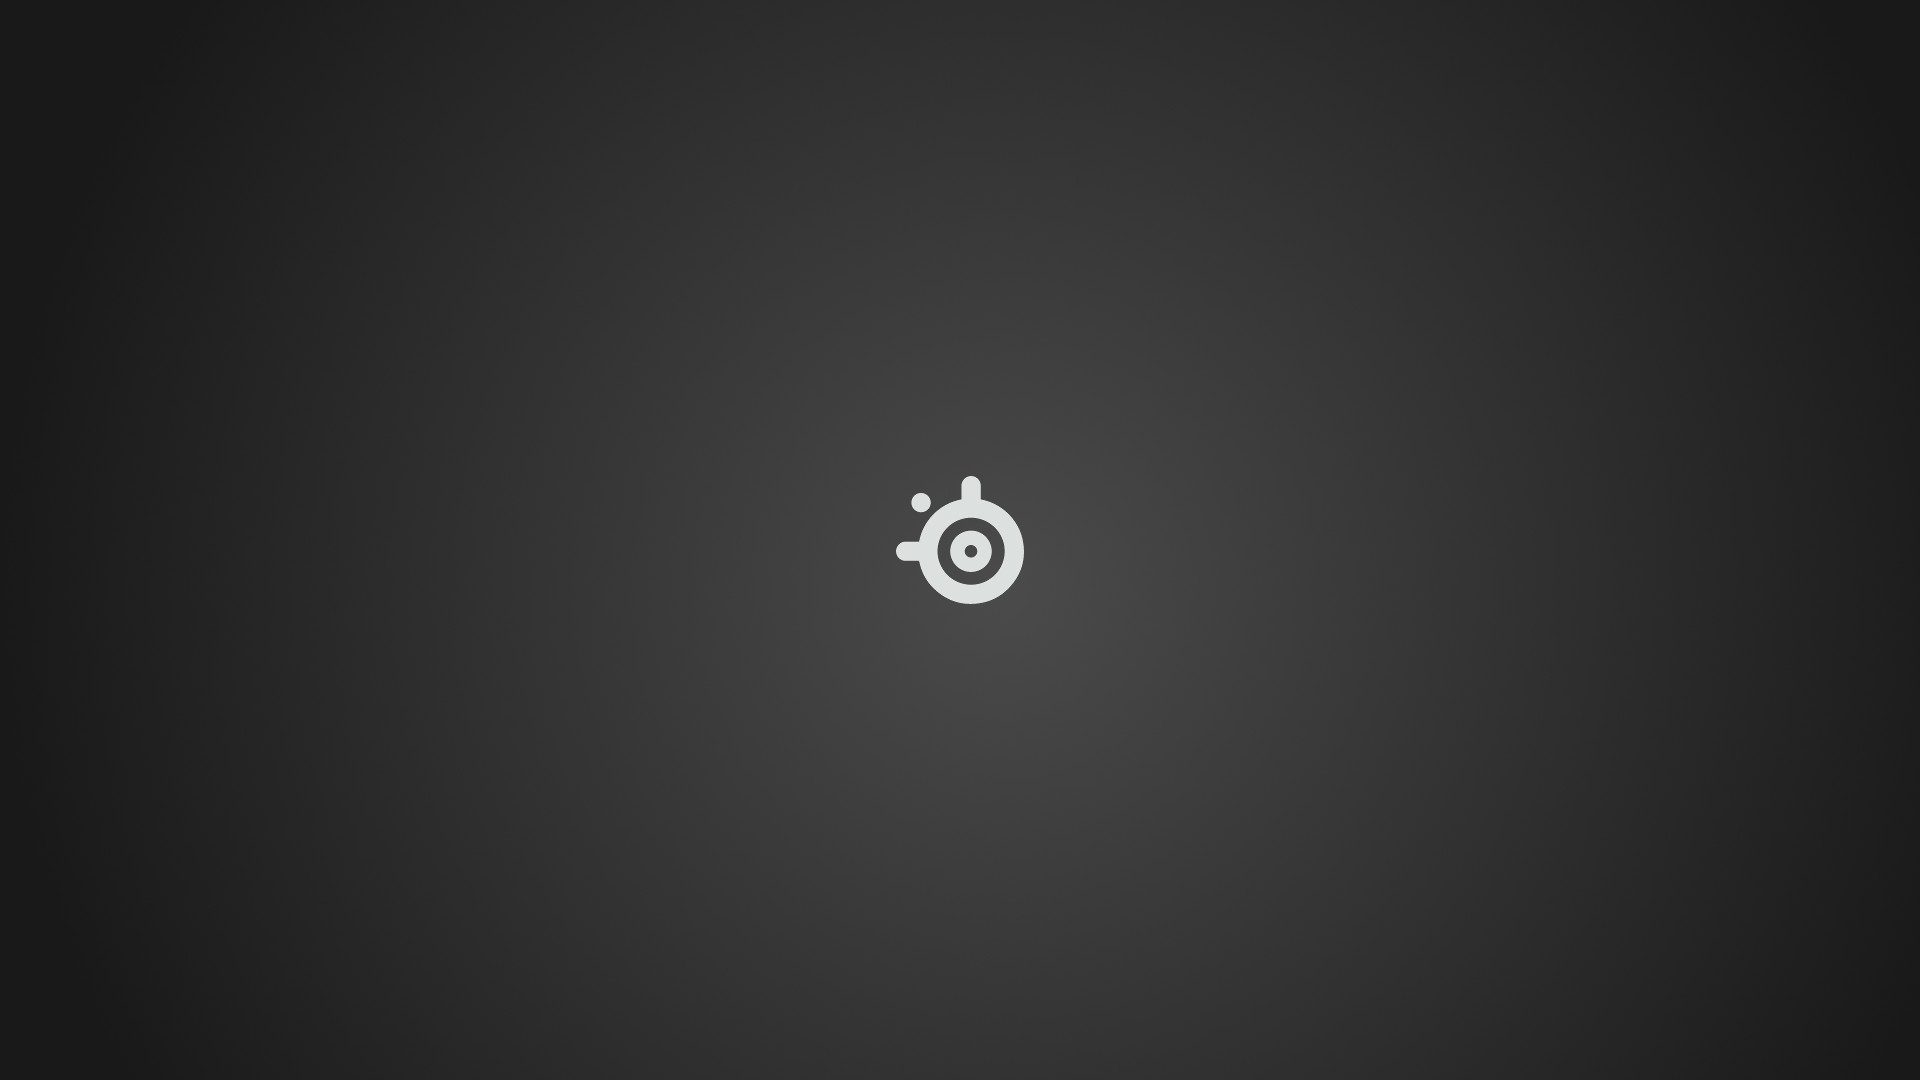 Free Download Logitech Wallpapers 74 Images 1920x1080 For